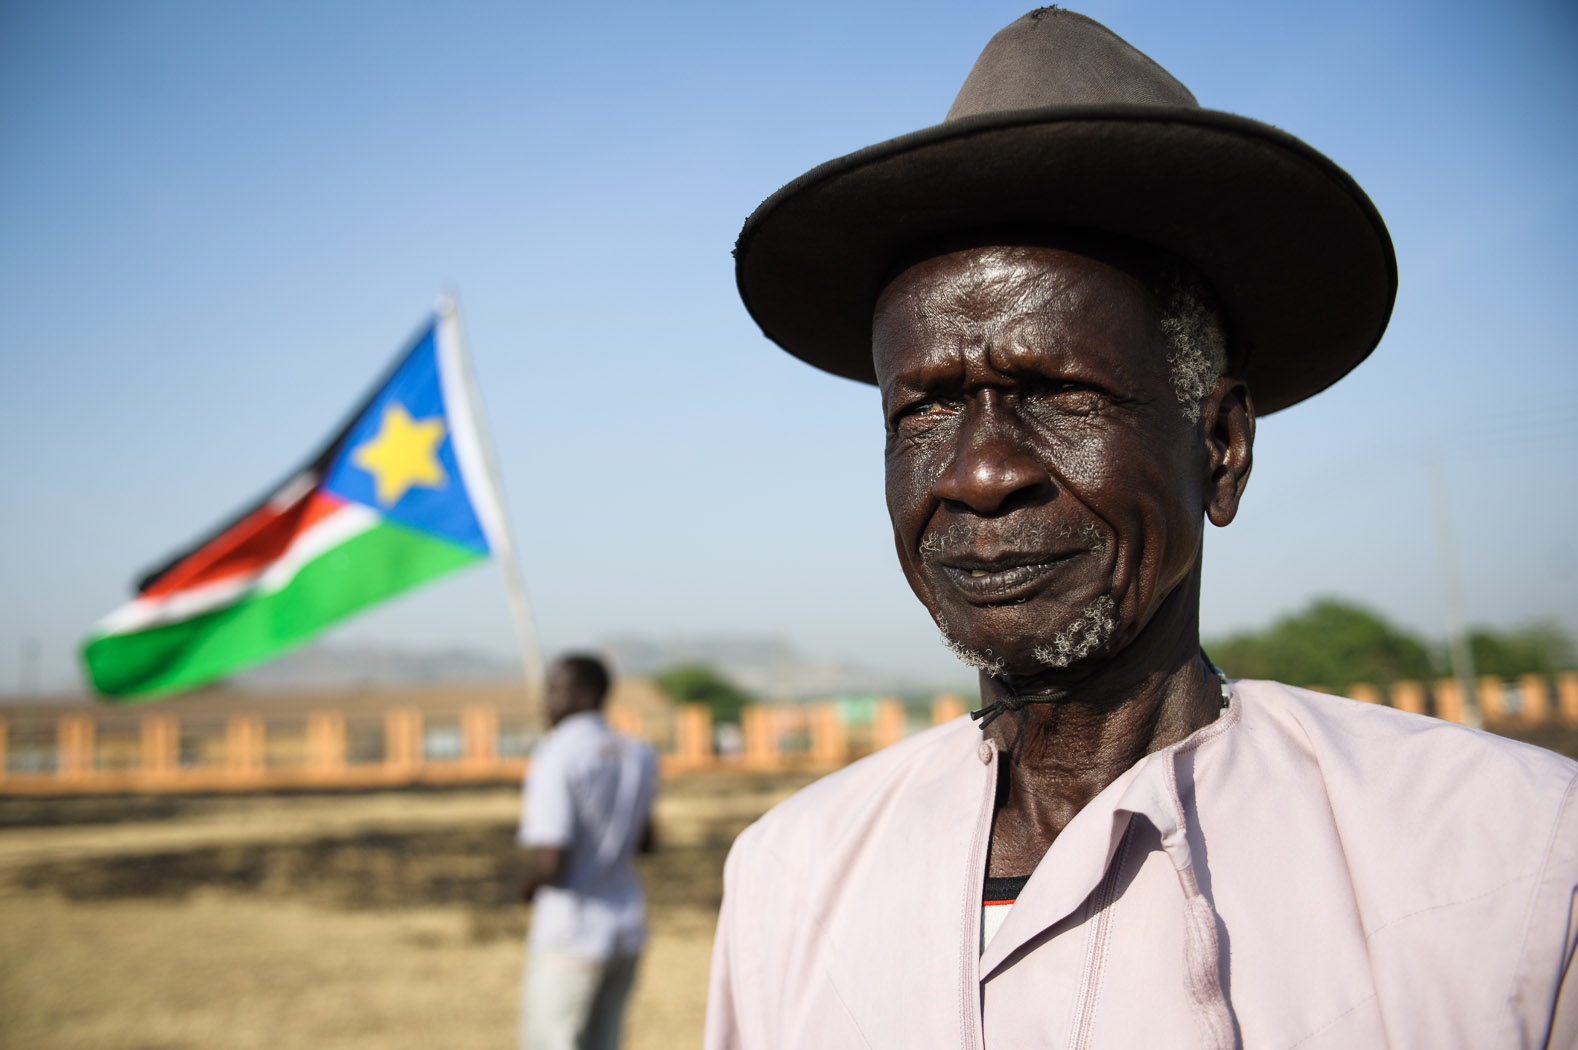 Southerners said they were proud to vote for their country's freedom.  By January 30th, southern Sudan was ready to reveal the results of the south's ballots. Whilst the diaspora could vote in the north, and eight international countries--the results of which would be announced in Khartoum a week later--South Sudan accounted for the vast majority of the ballots.  With little surprise, nearly 100% of Southerners voted for secession.